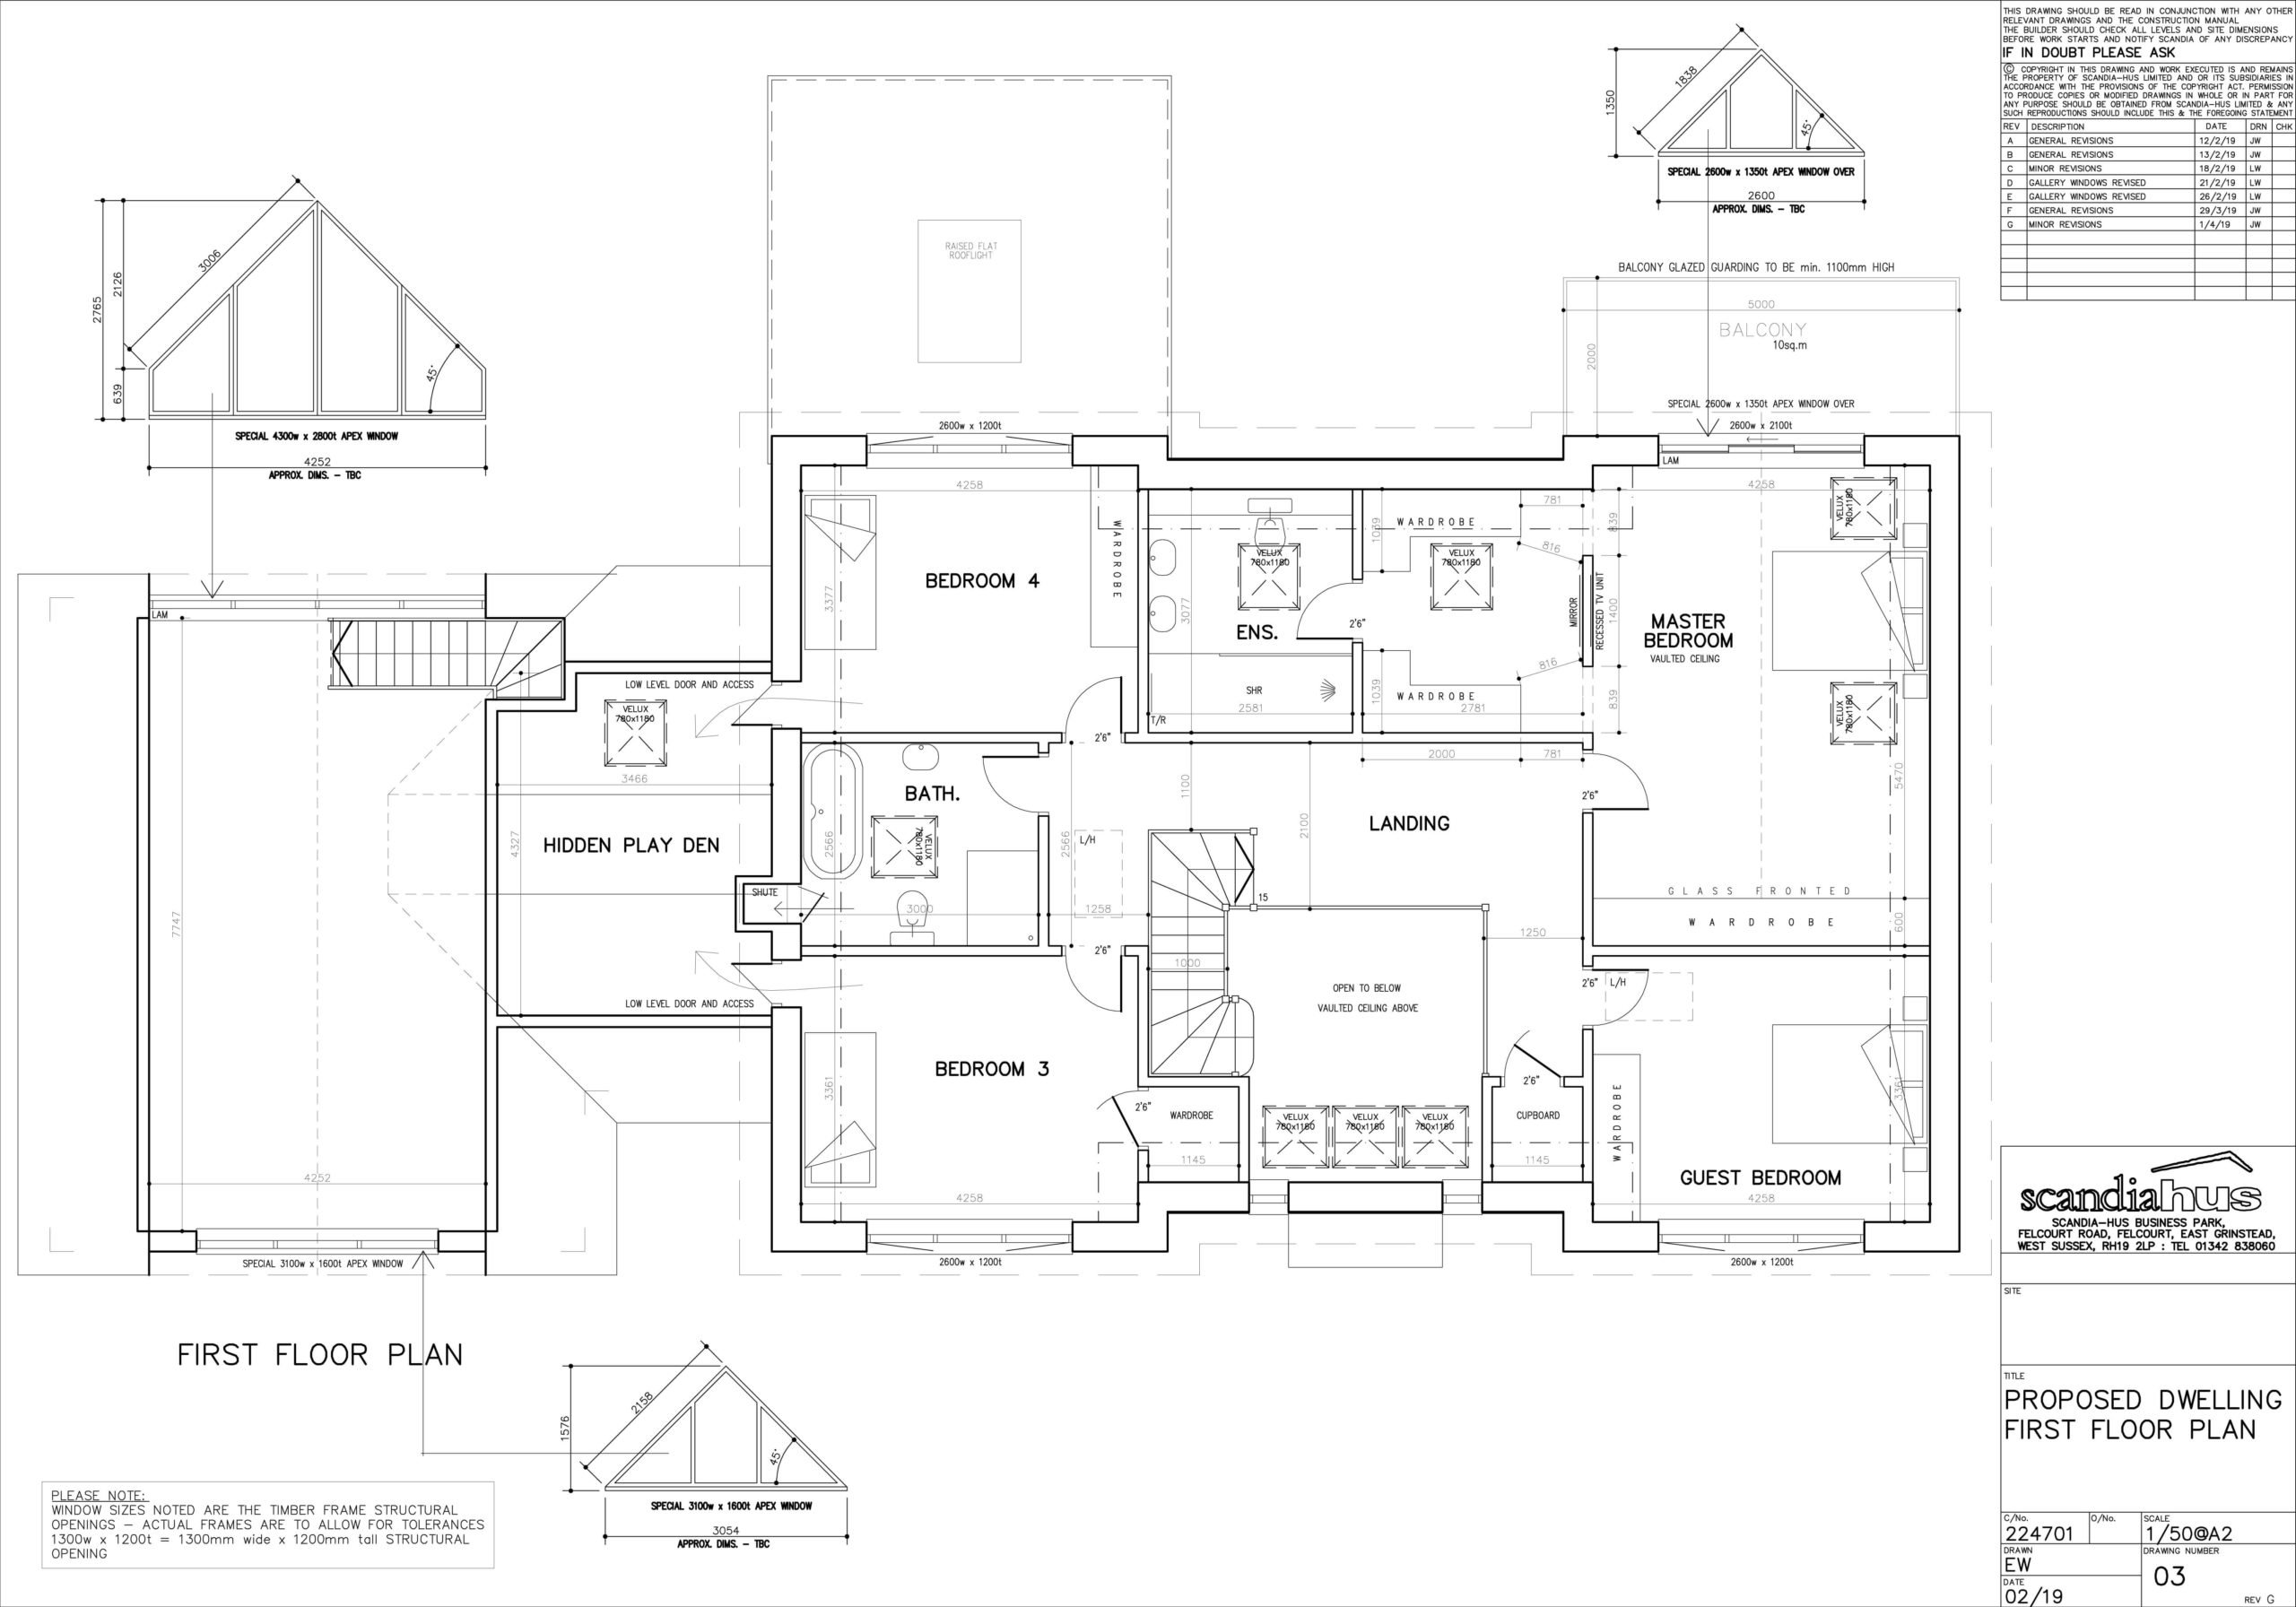 First floor plans of Scandia Hus new build to help plan air conditioning with SubCool FM